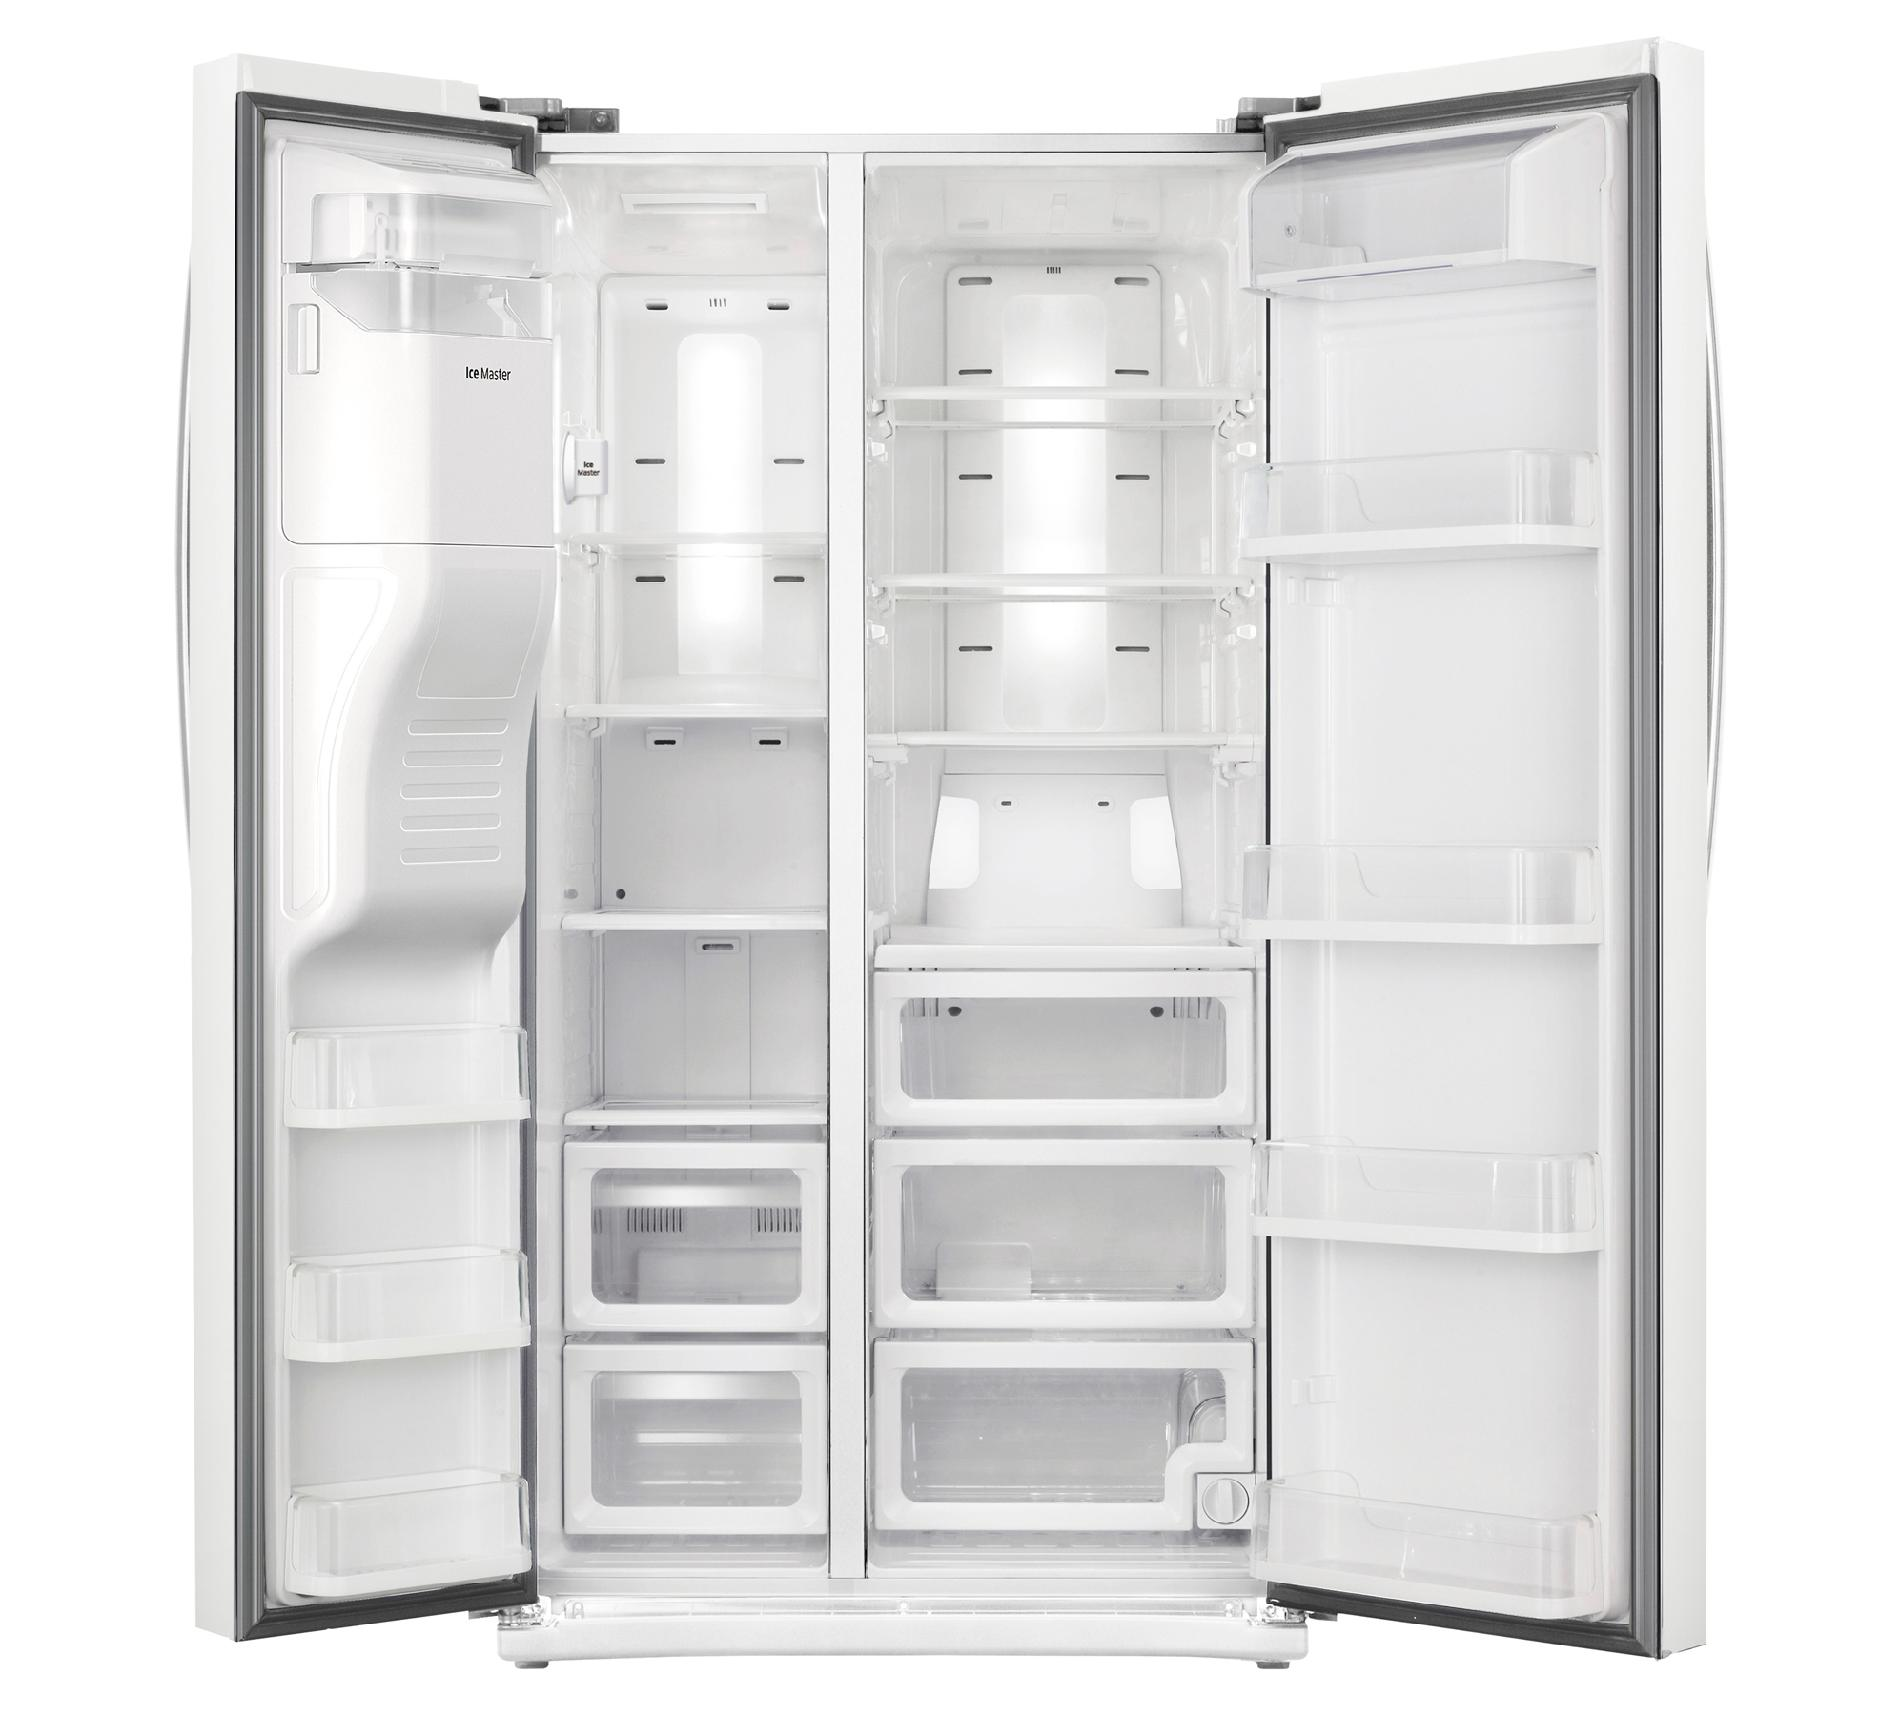 Samsung 24.5 cu. ft. Side-by-Side Refrigerator - White